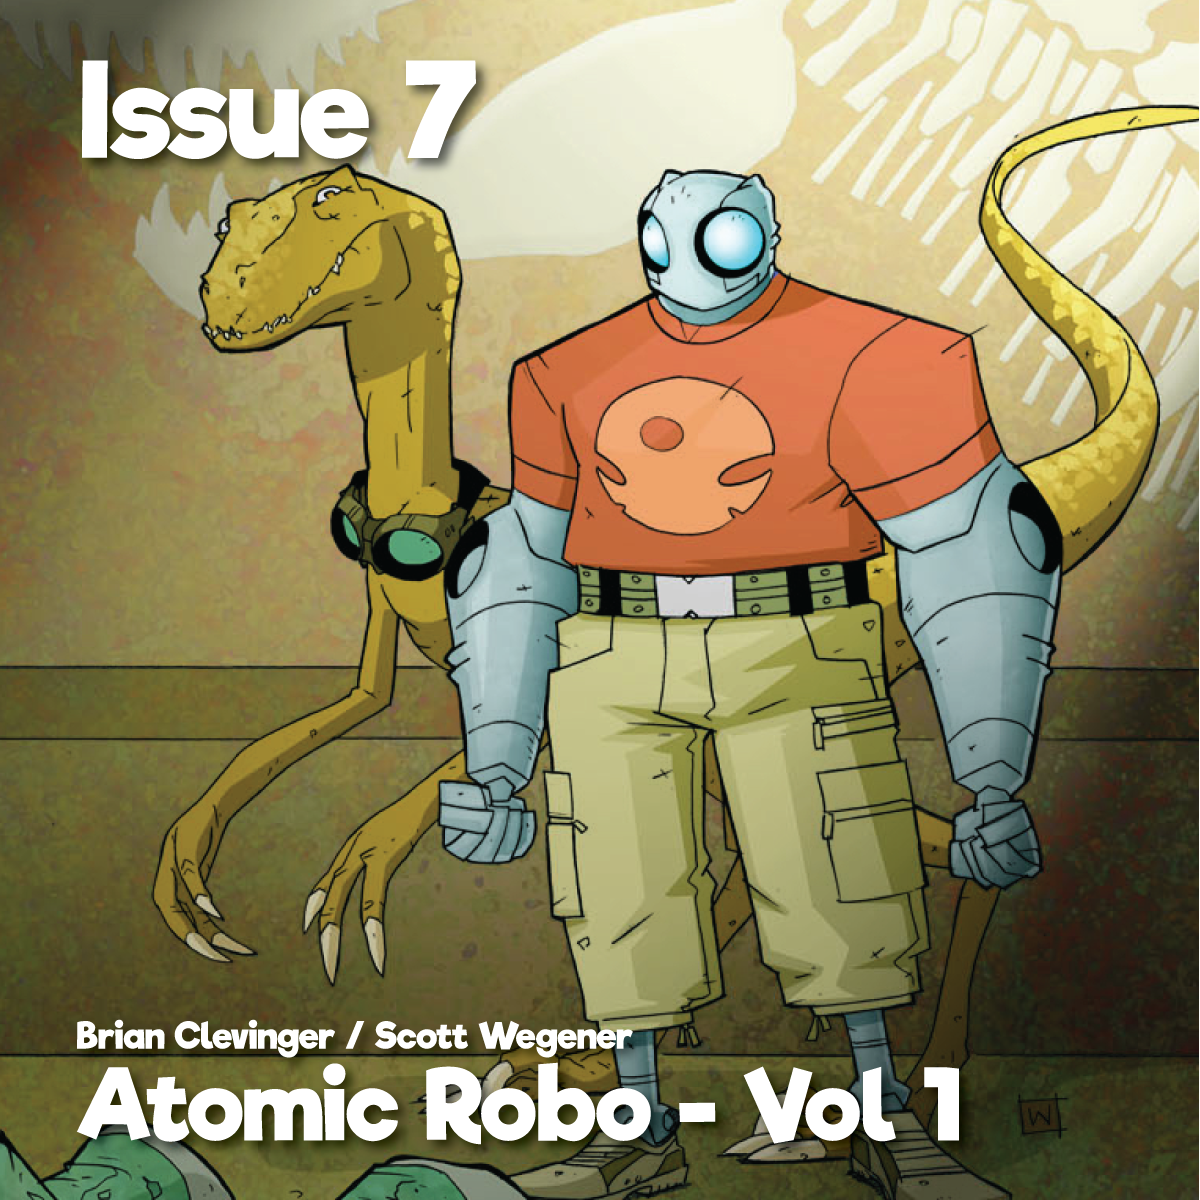 Issue7_AtomicRoboVol1_1200x1200.png